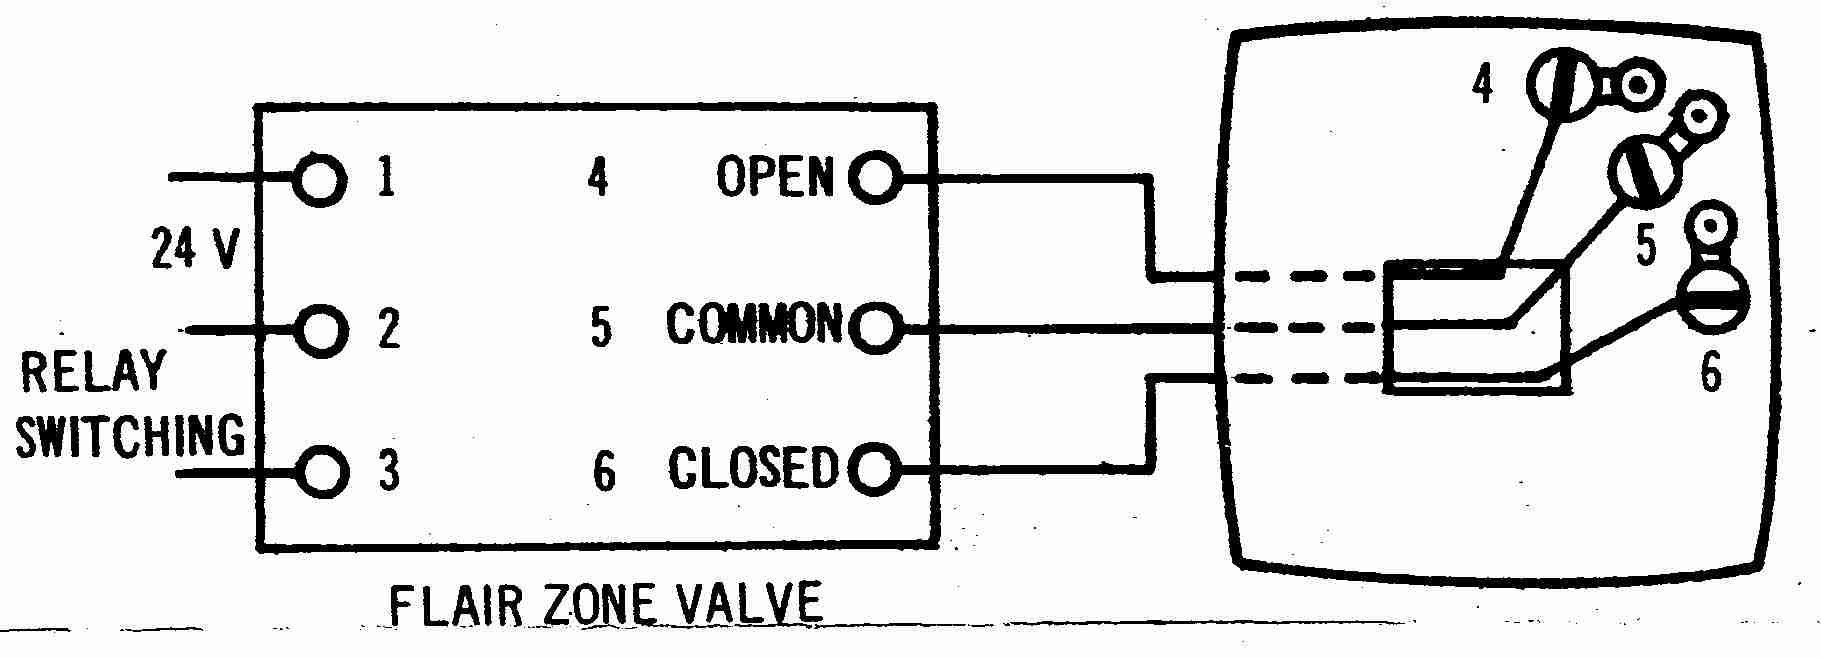 Room Thermostat Wiring Diagrams For HVAC Systems With 5 Wire And 3